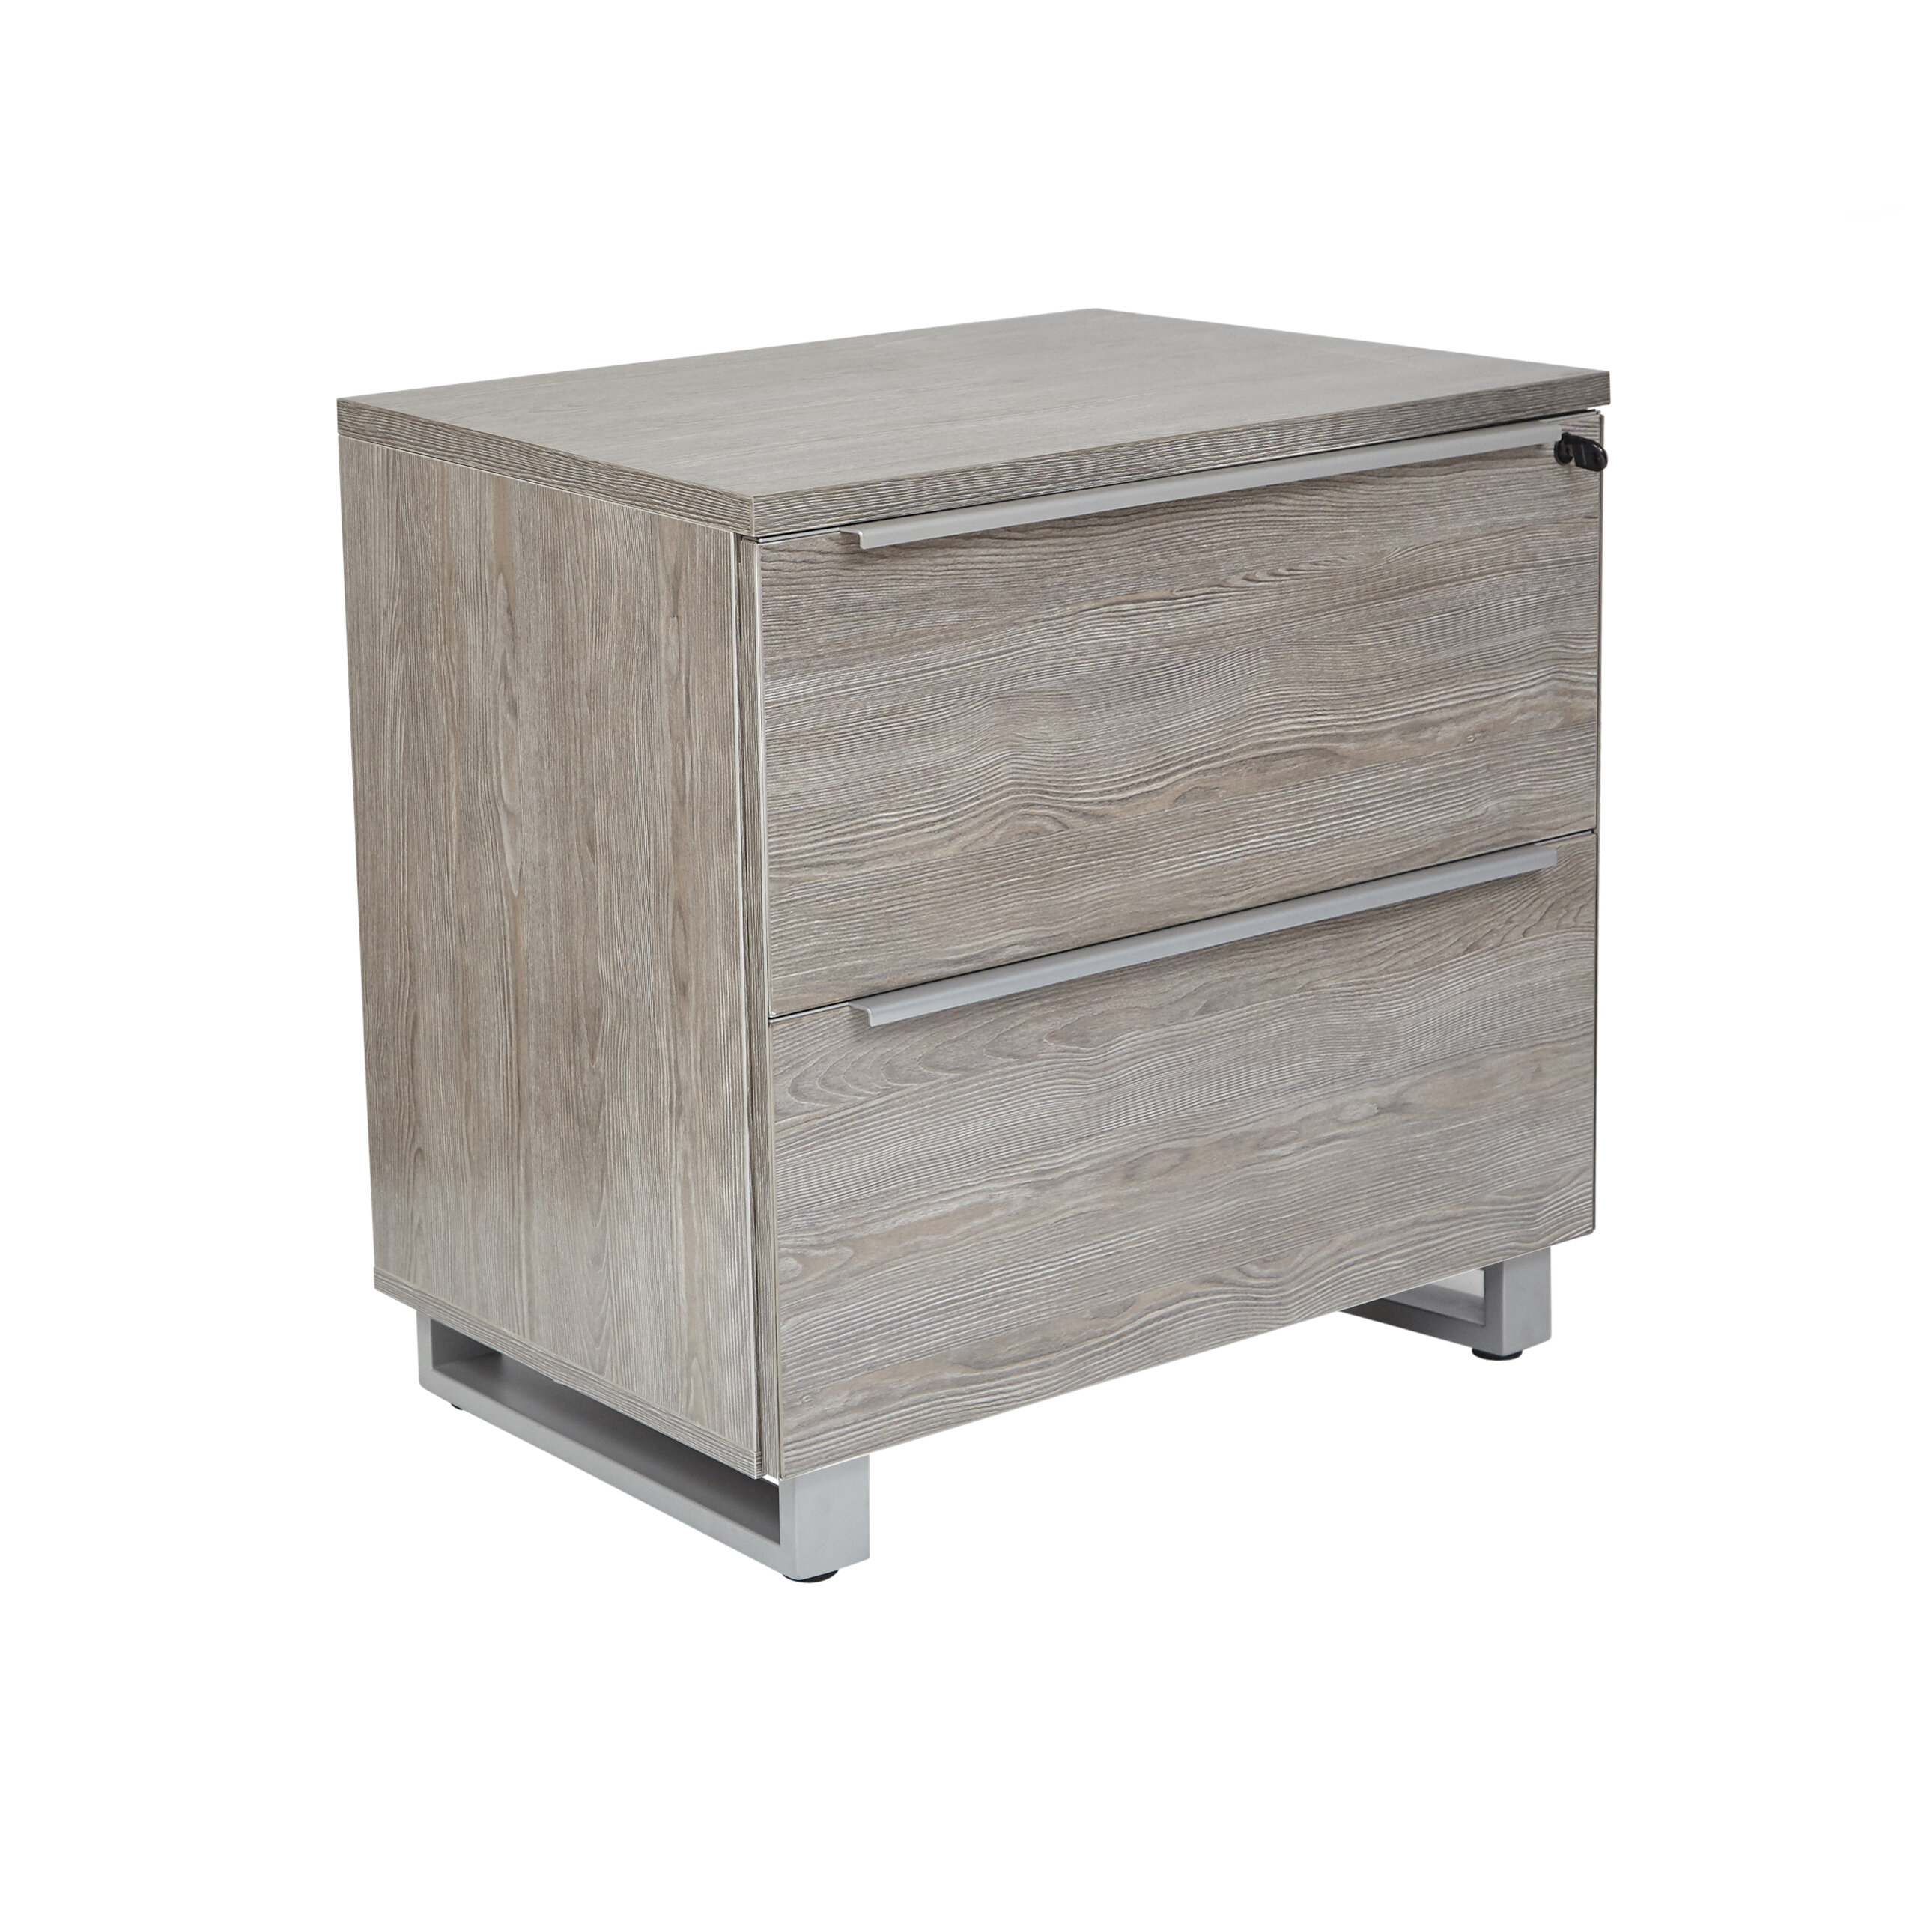 Ose 45-Drawer Lateral Filing Cabinet